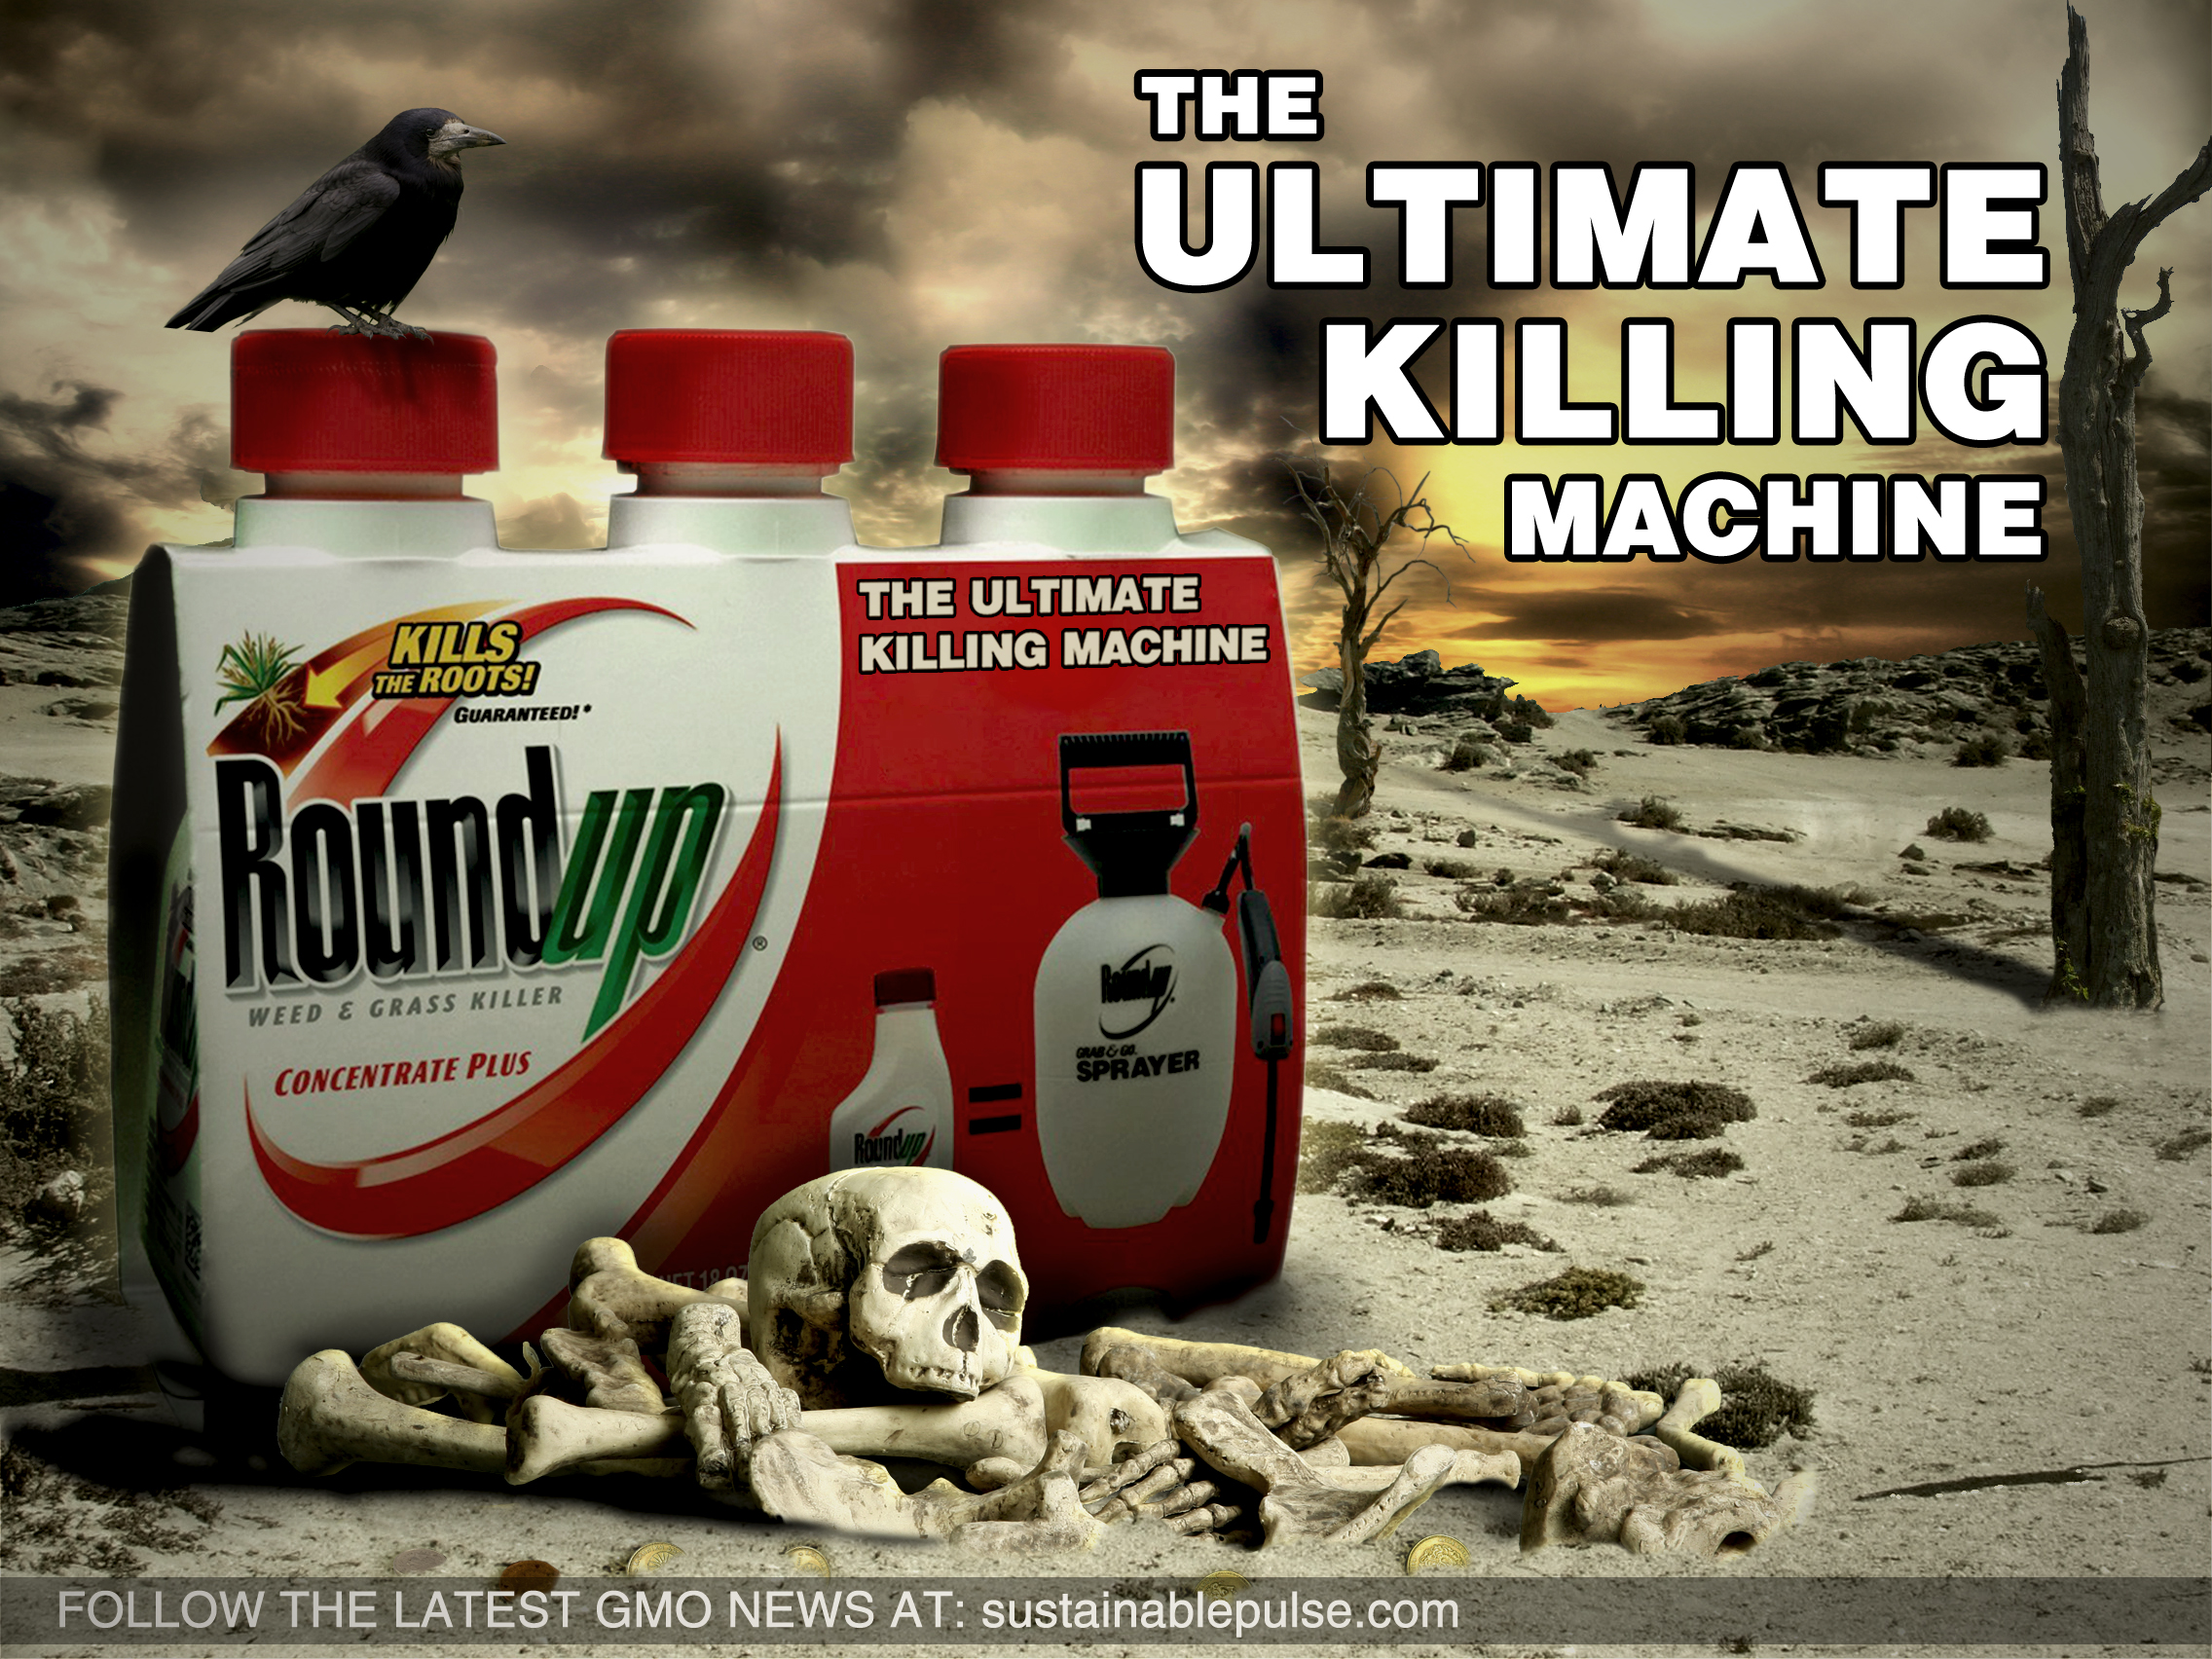 Death from Roundup